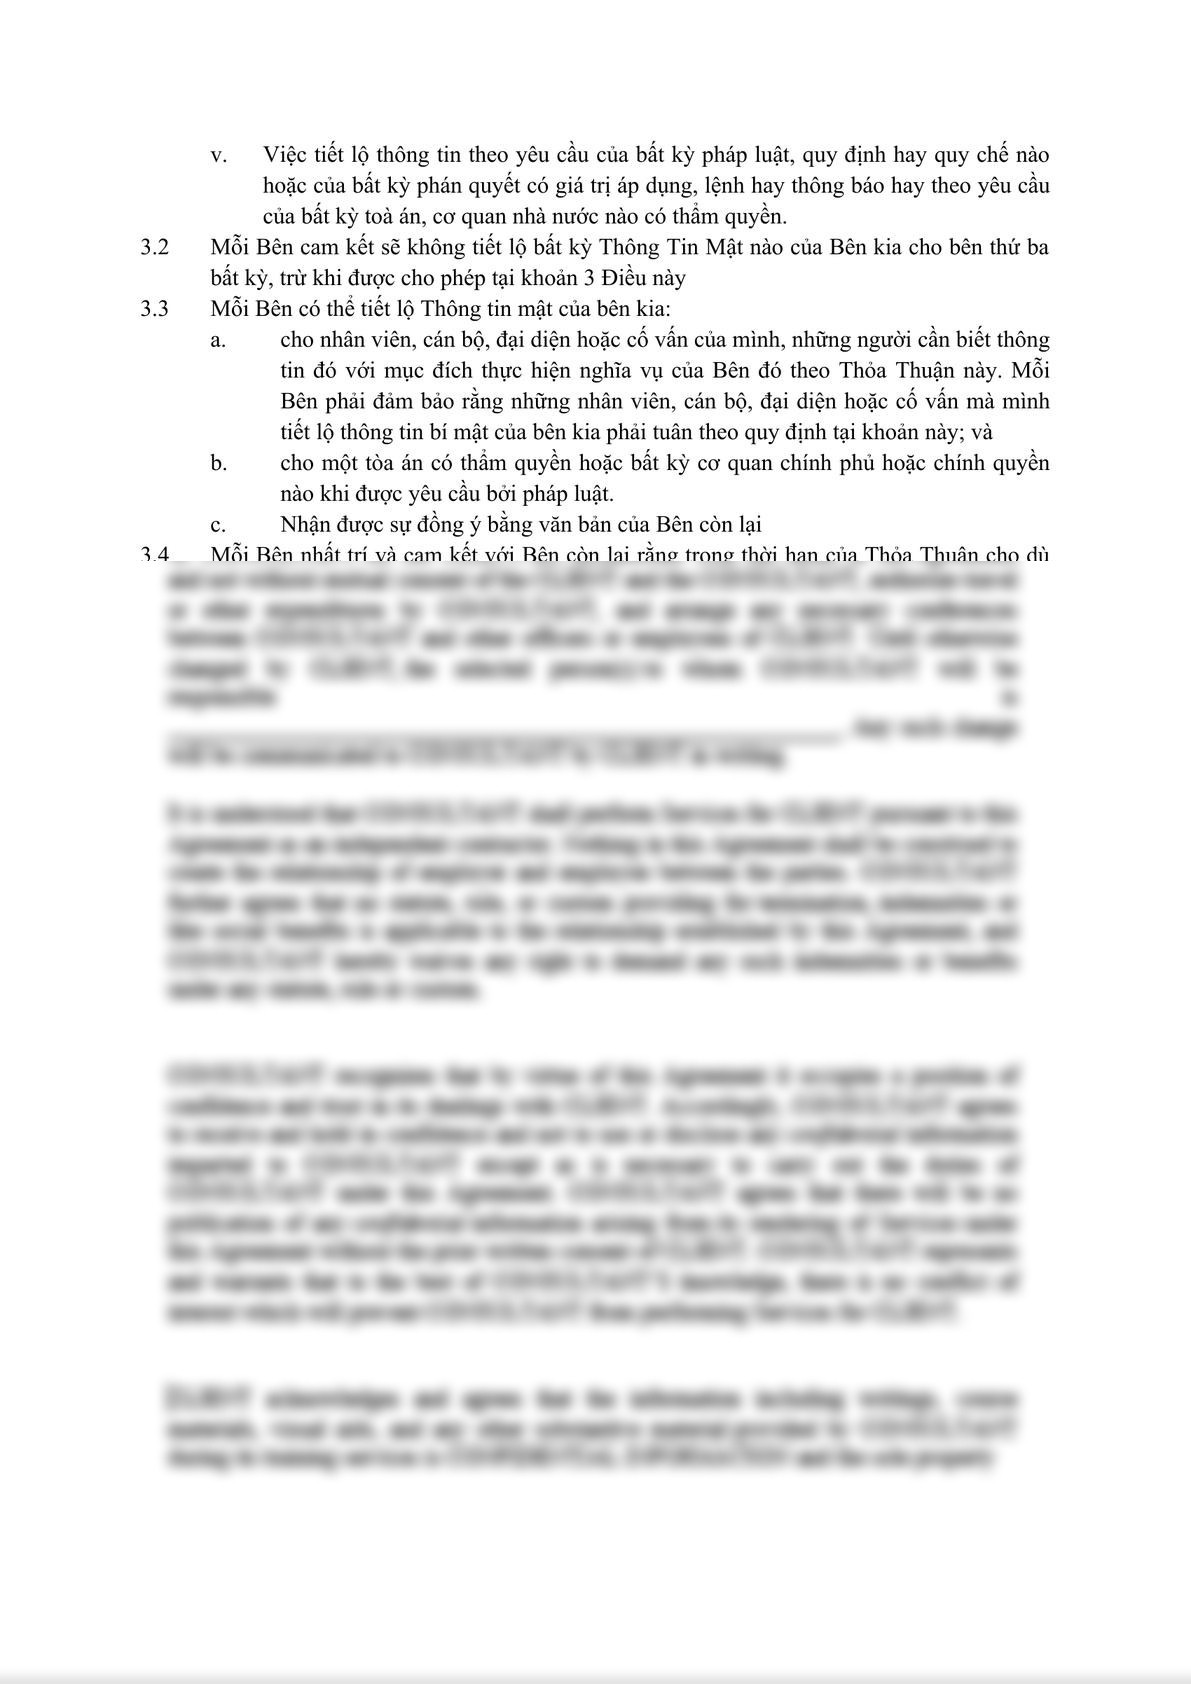 Master project collaboration agreement-4